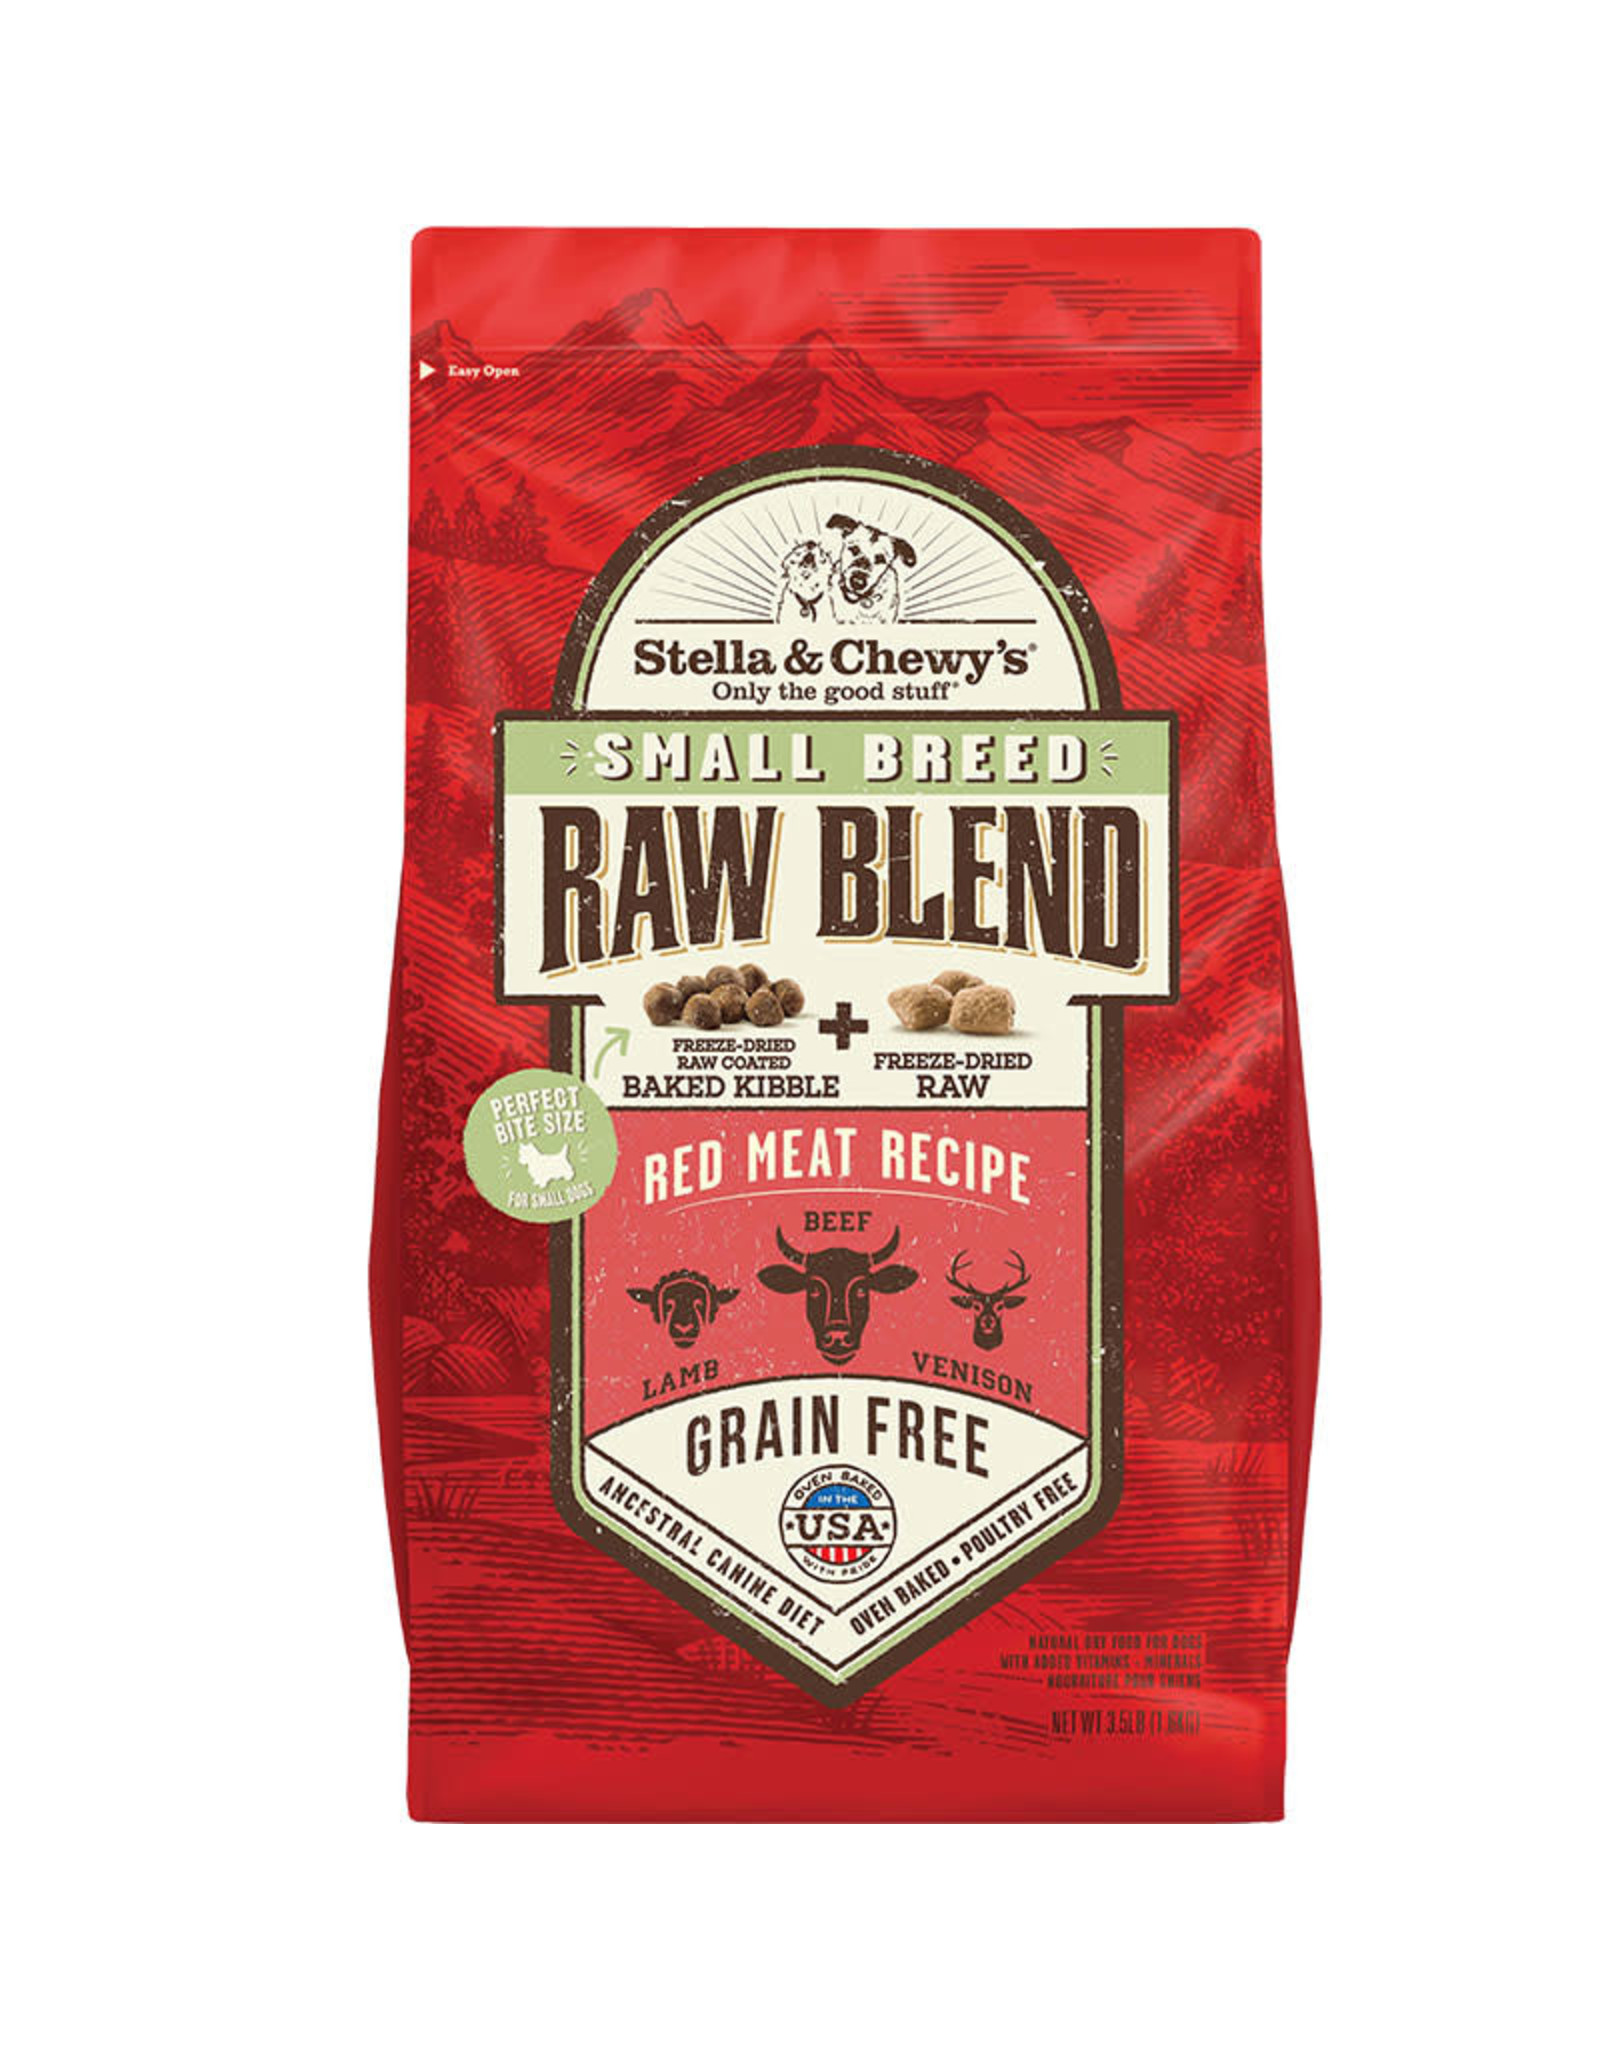 Stella & Chewy's Stella & Chewy's Small Breed Raw Blend Red Meat Recipe Dog Food 3.5lb